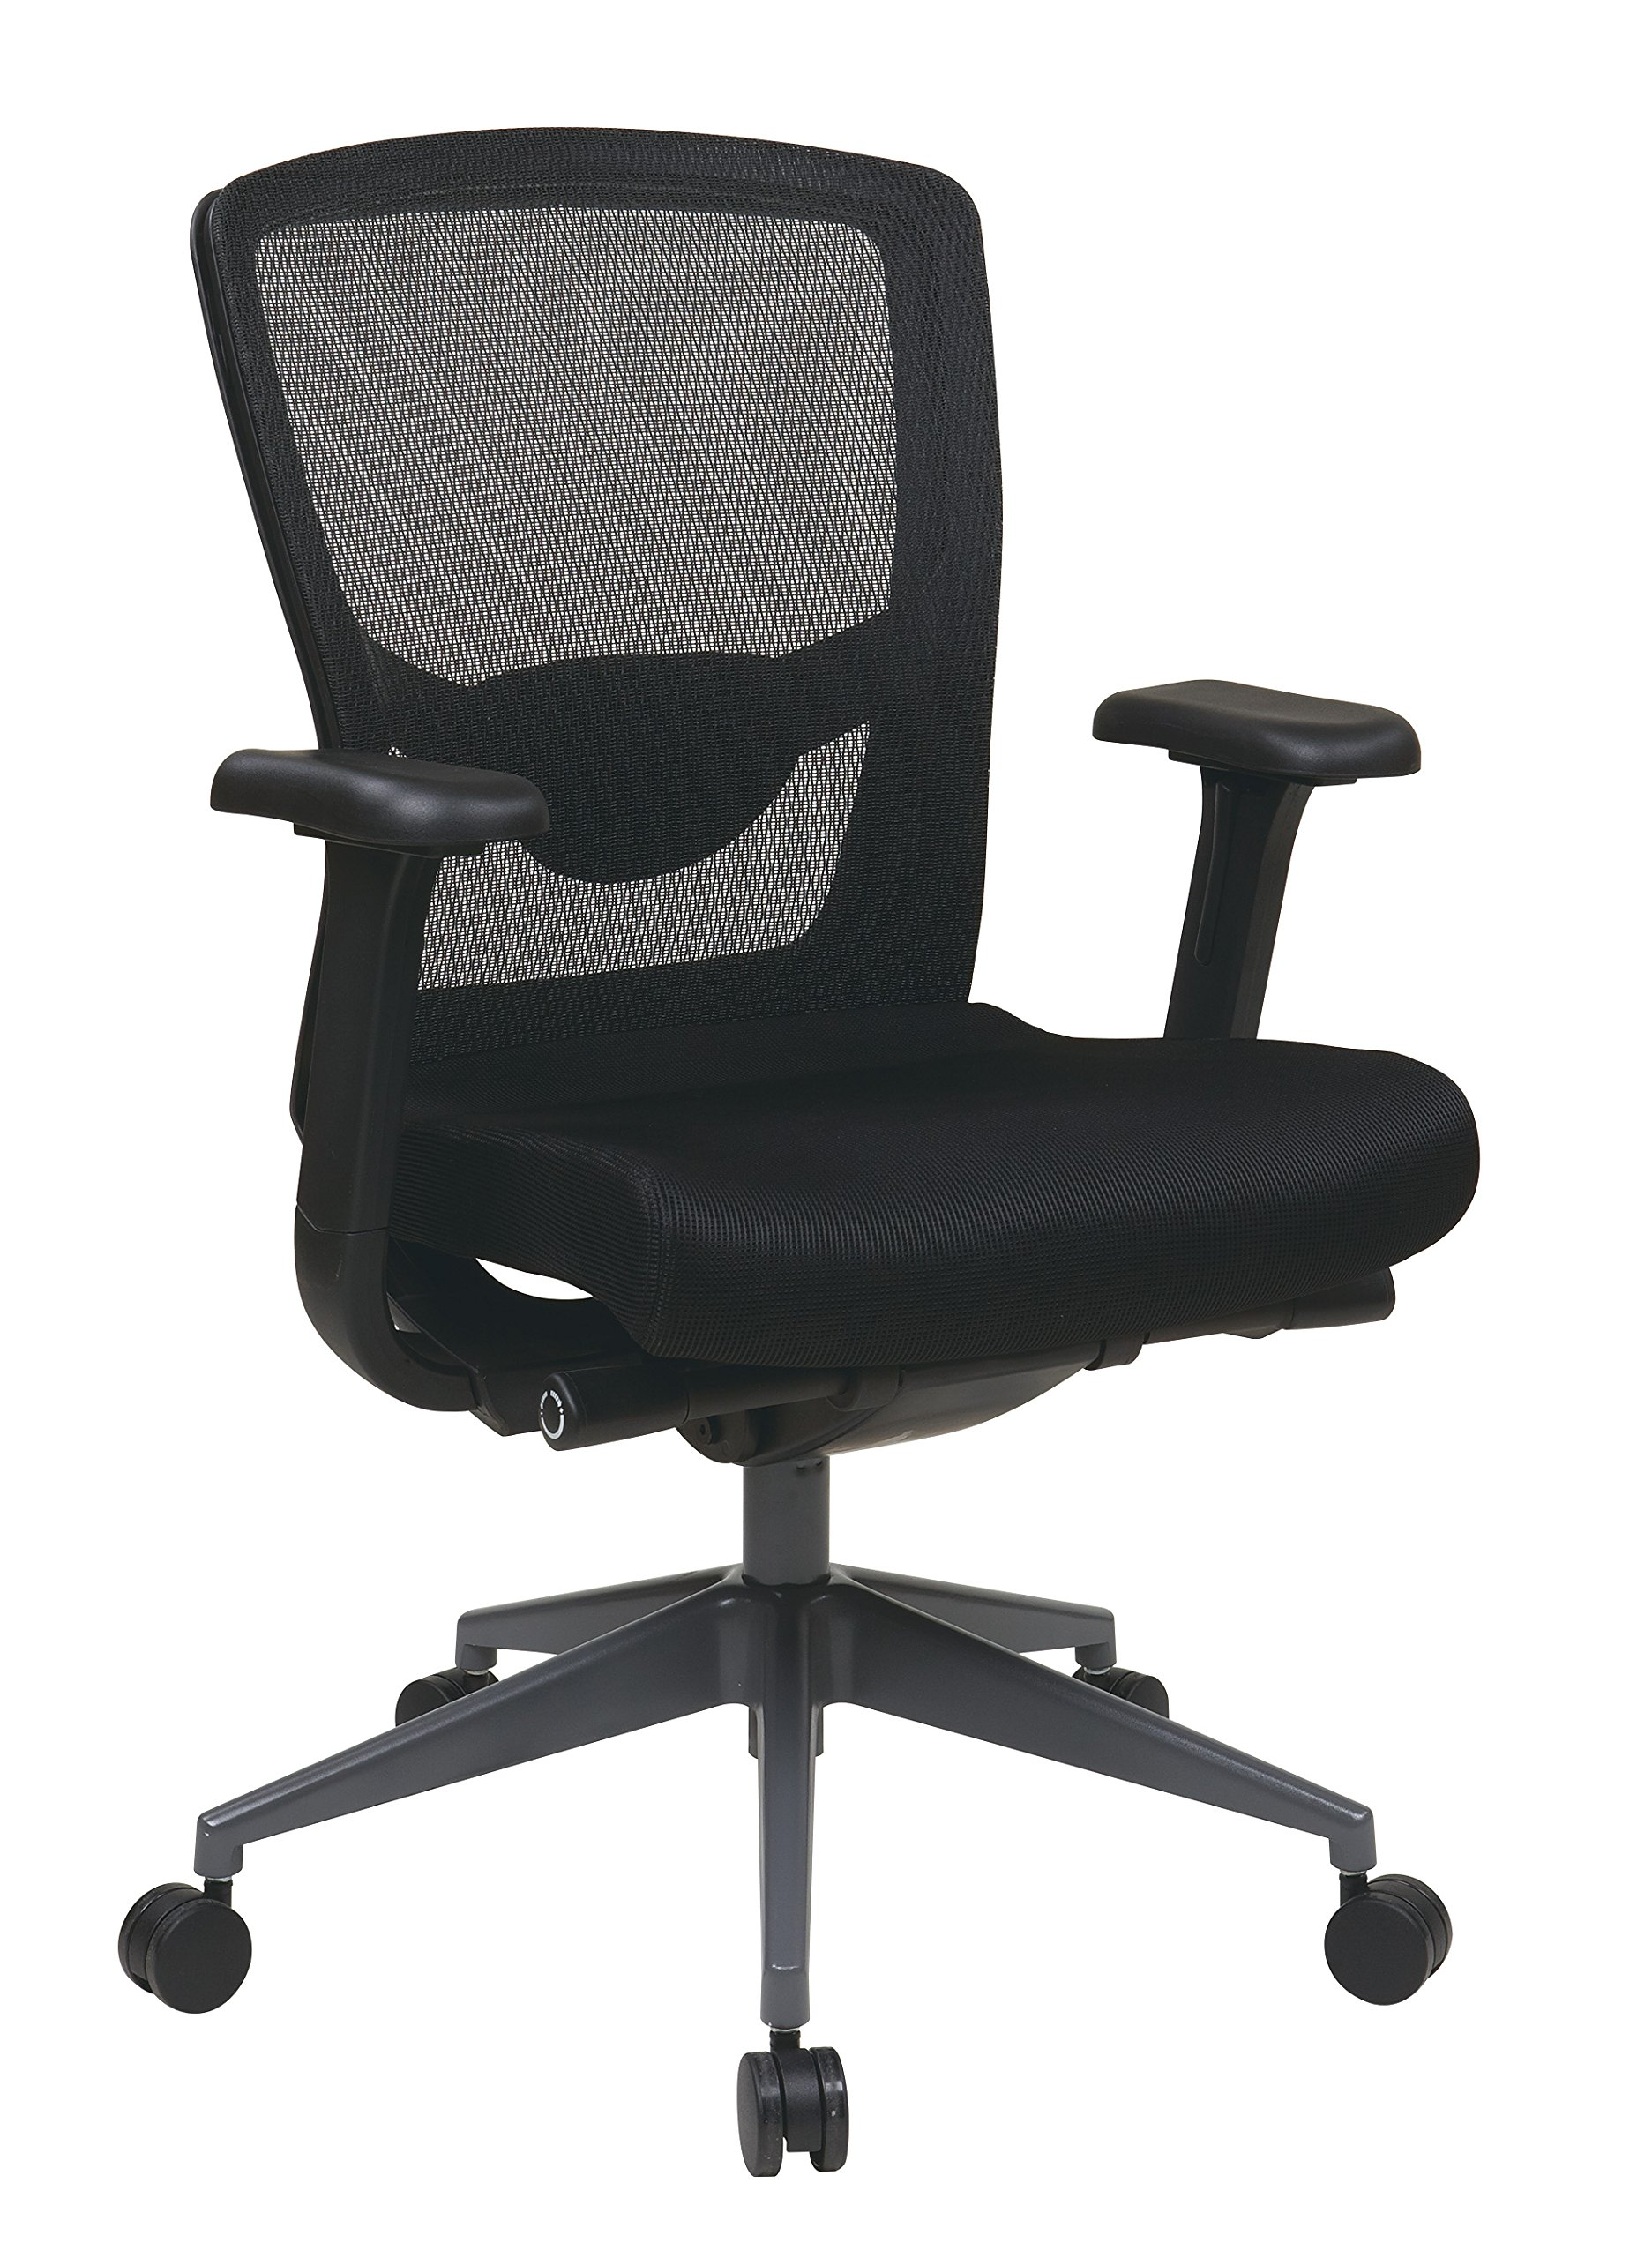 Office Star ProGrid Mesh Back and Fabric Seat, 2-to-1 Synchro Tilt Control, Adjustable Arms, Polished Aluminum Base High Back Chair, Black